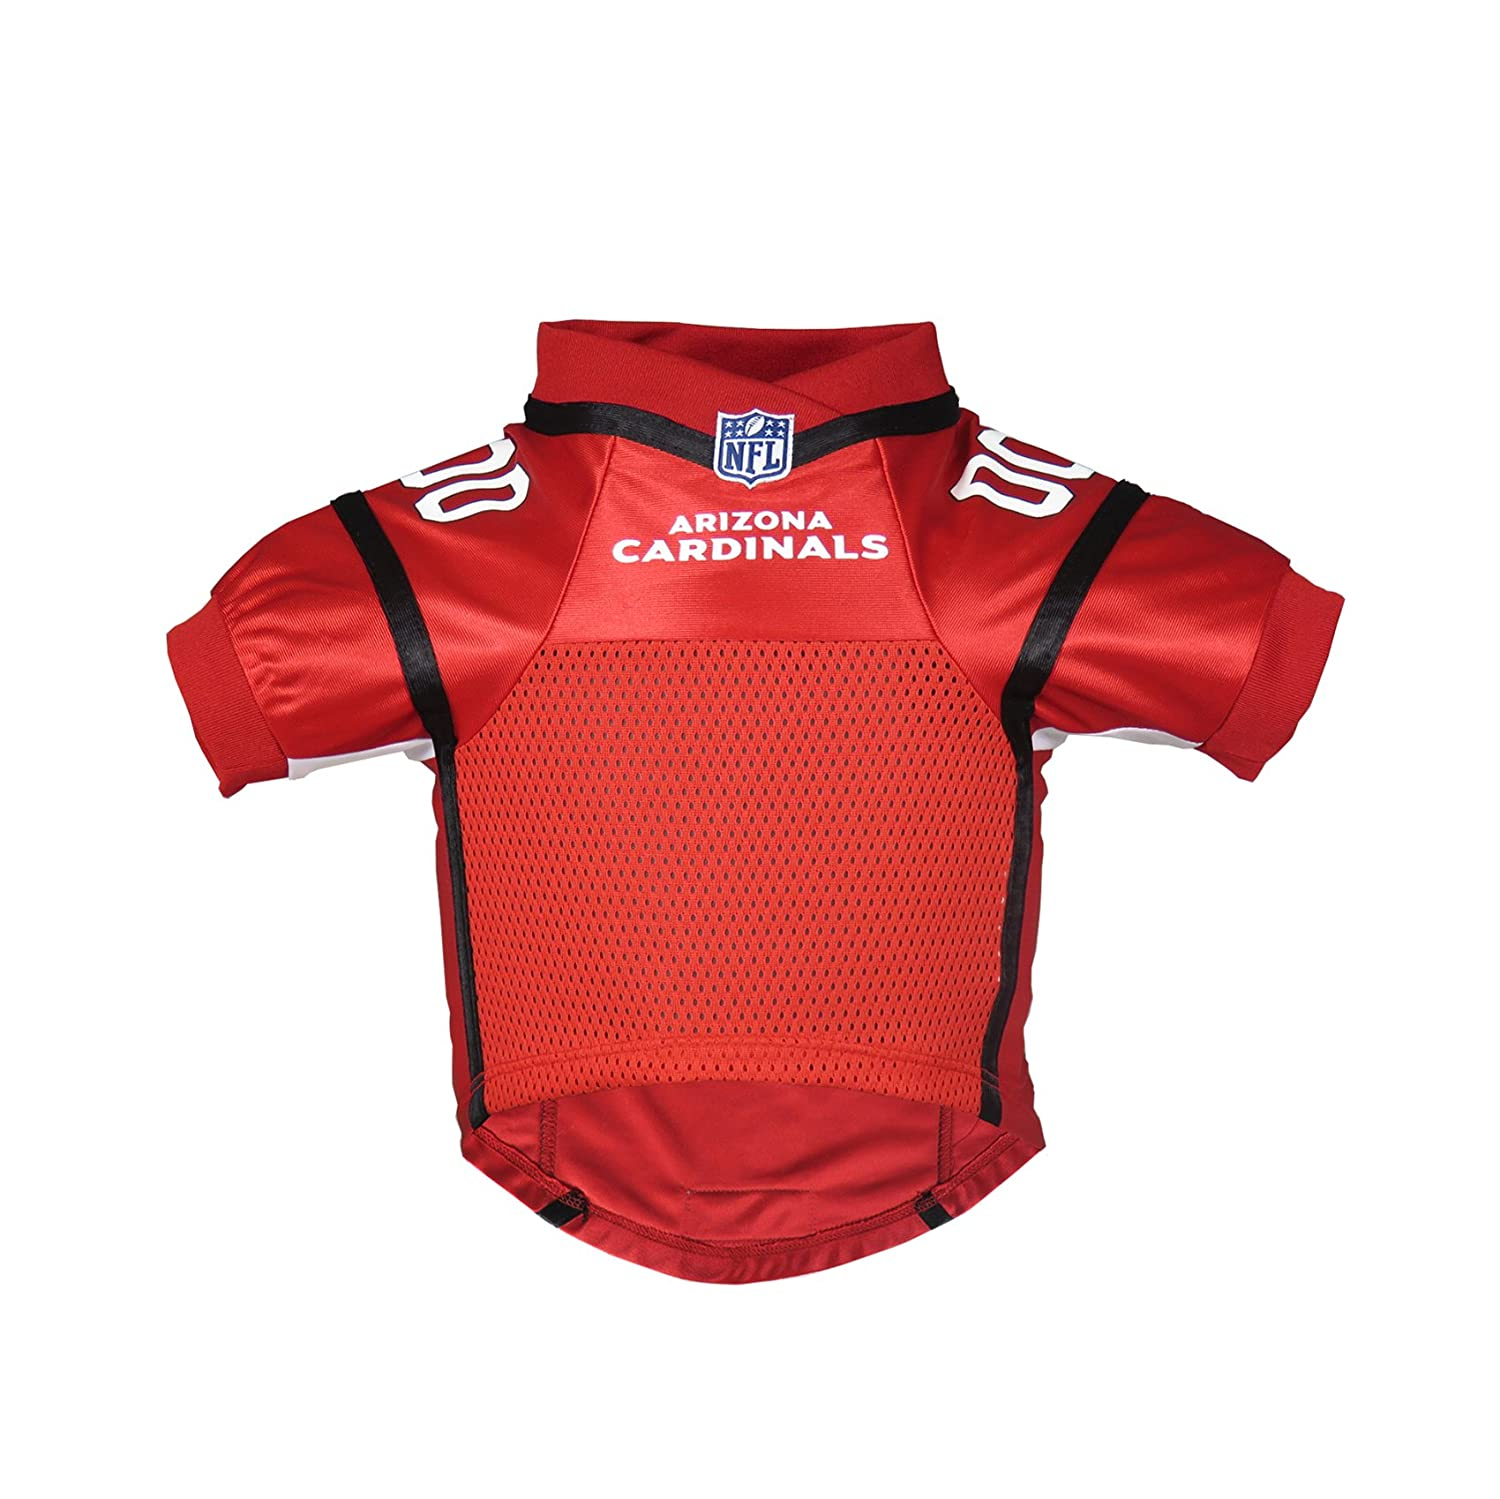 9363f34ec Amazon.com   NFL Premium Pet Jersey   Sports   Outdoors